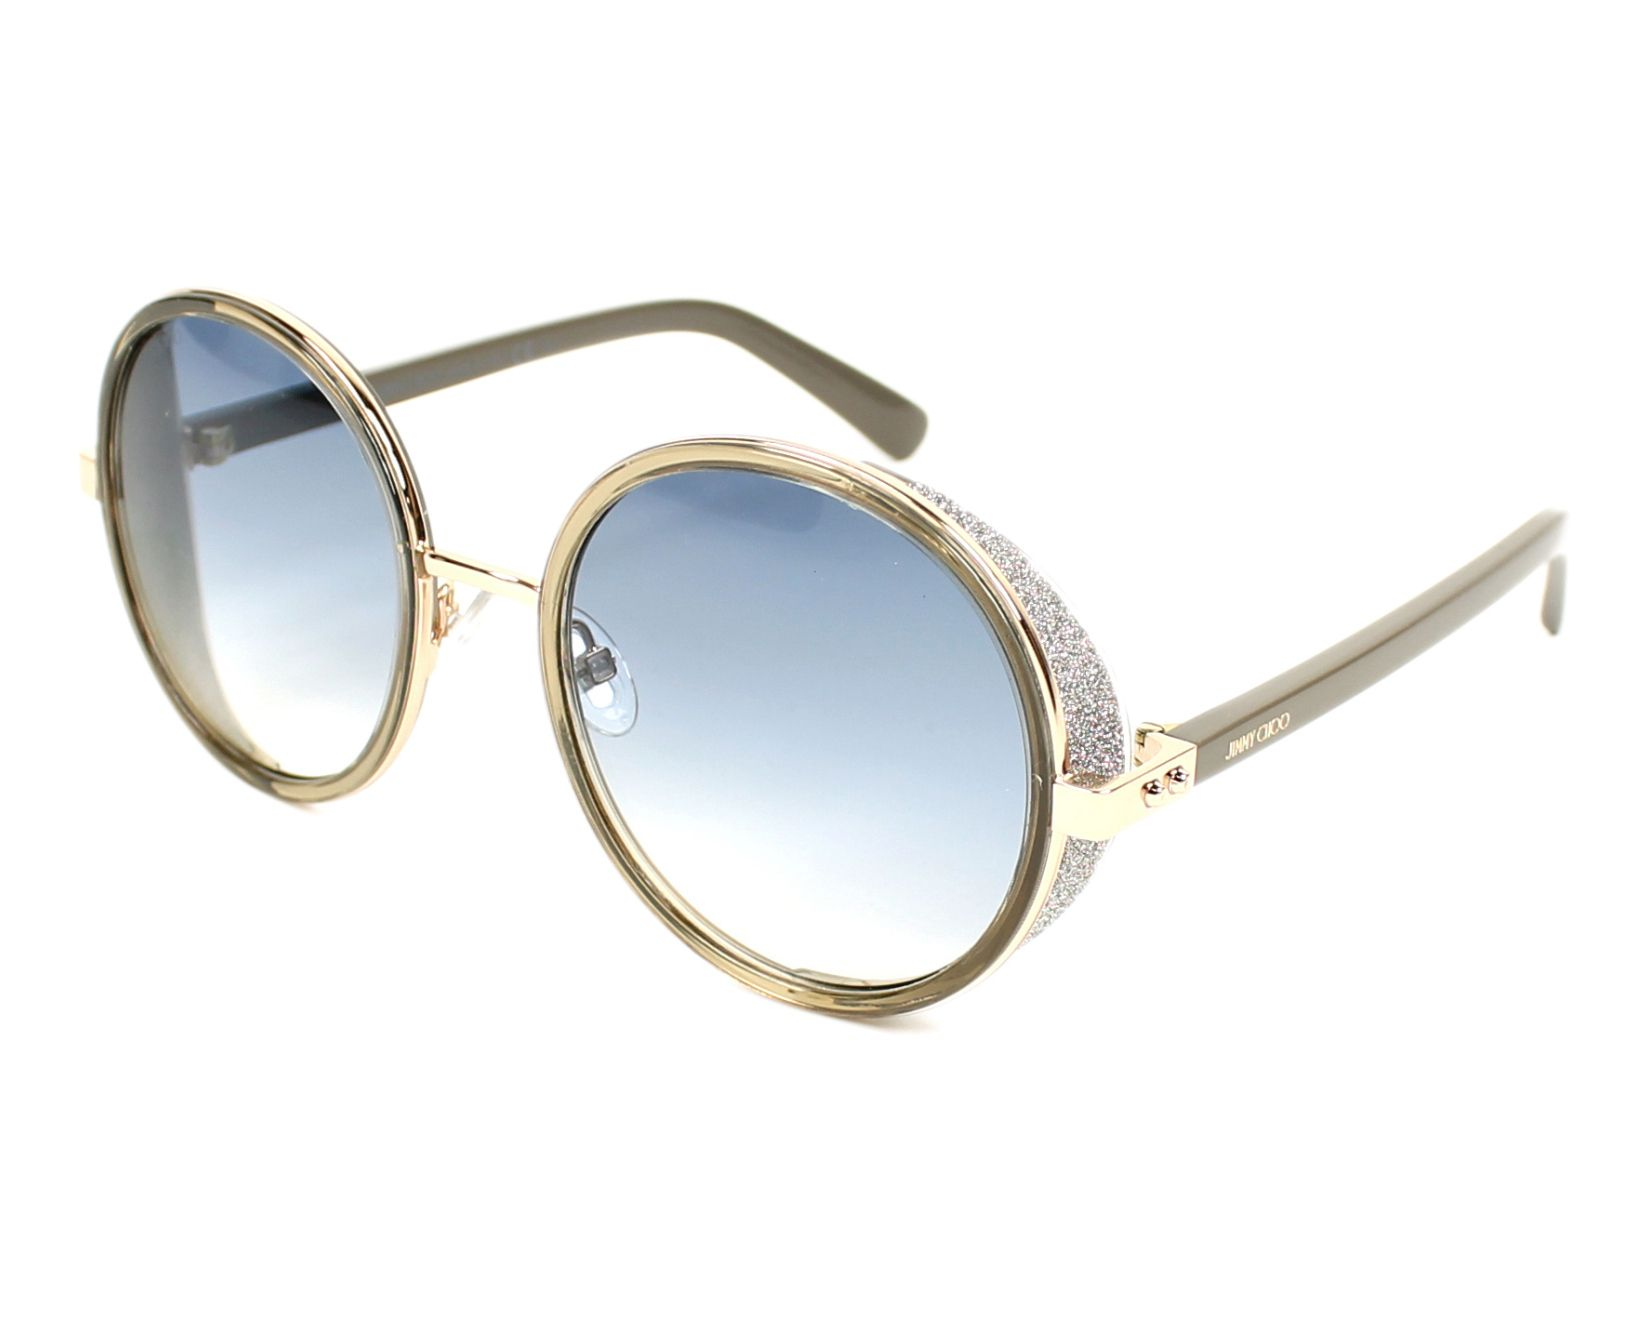 264905dfcf Sunglasses Jimmy Choo ANDIE-S S9R U3 54-21 Gold Grey profile view